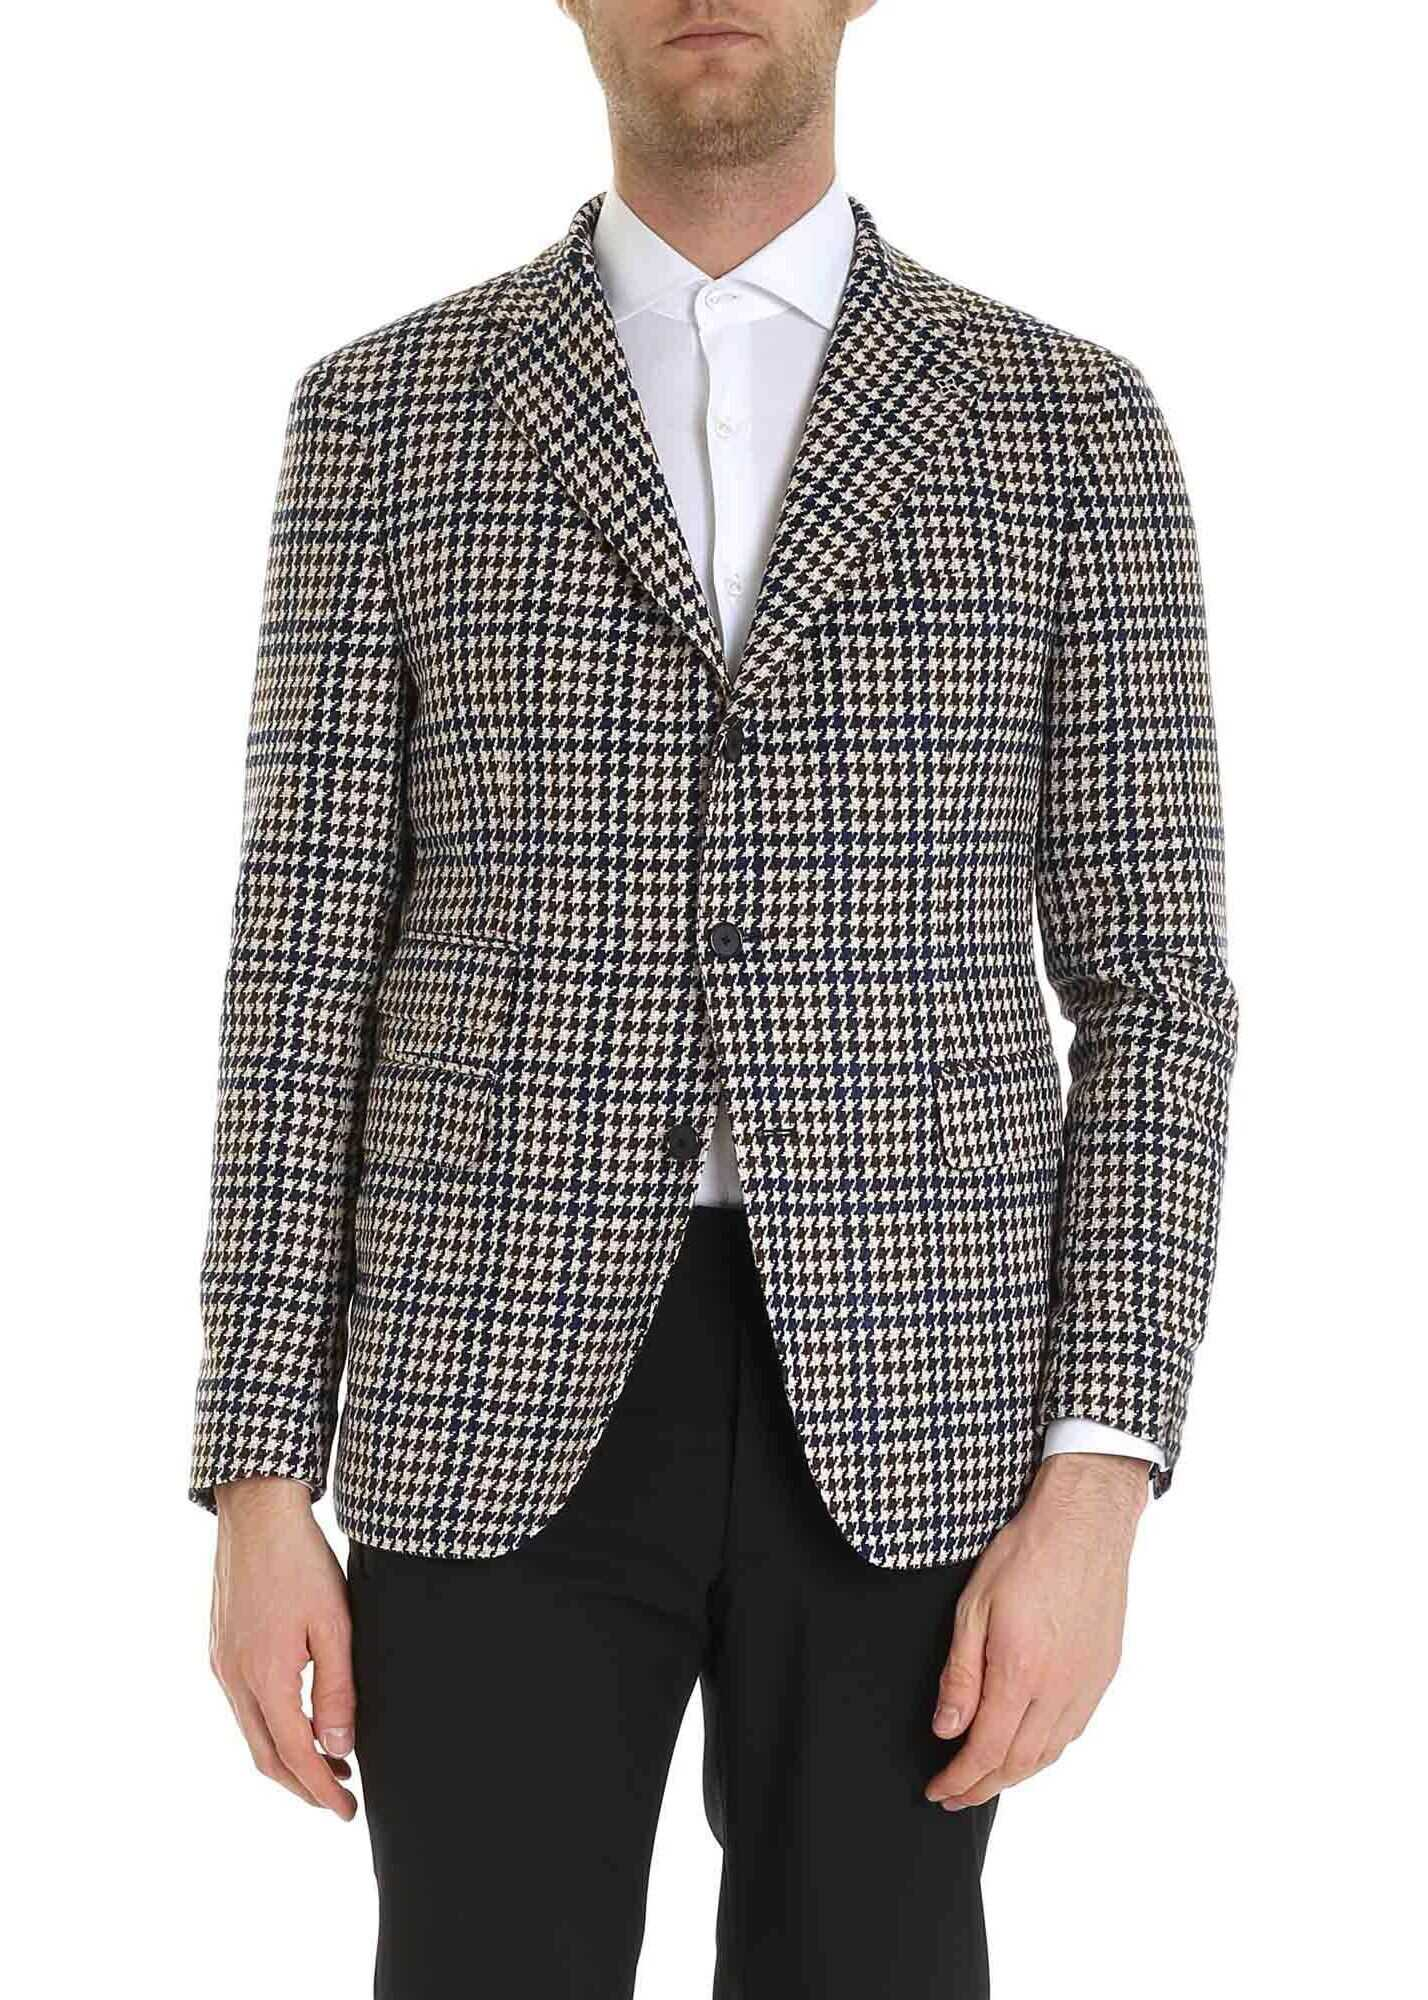 Houndstooth Jacket In Ivory Color thumbnail